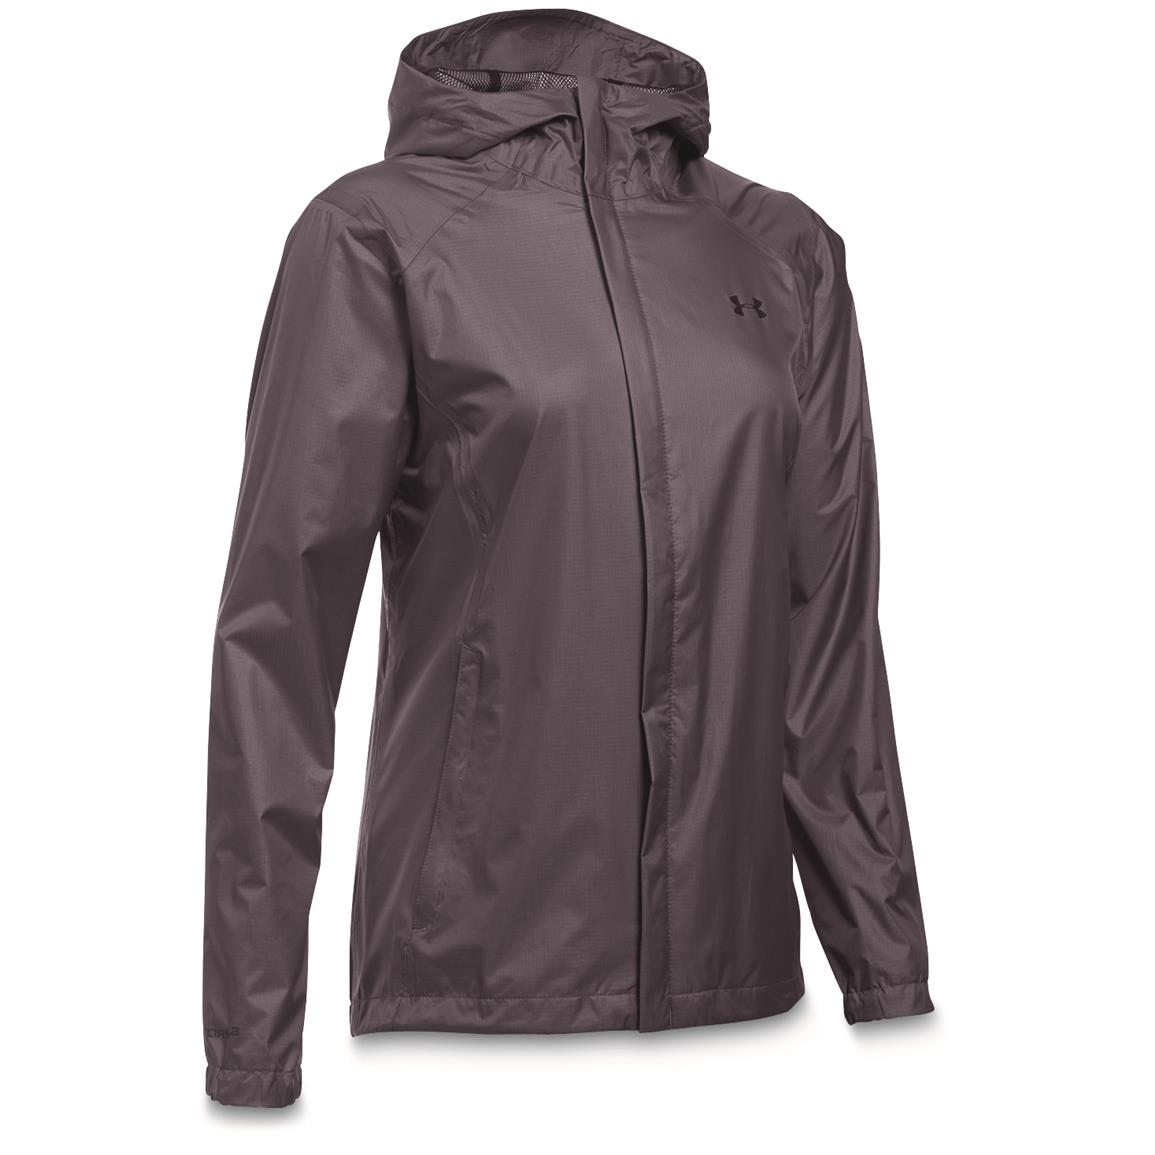 Under Armour Women's Waterproof/Windproof Bora Jacket, Flint/Imperial Purple